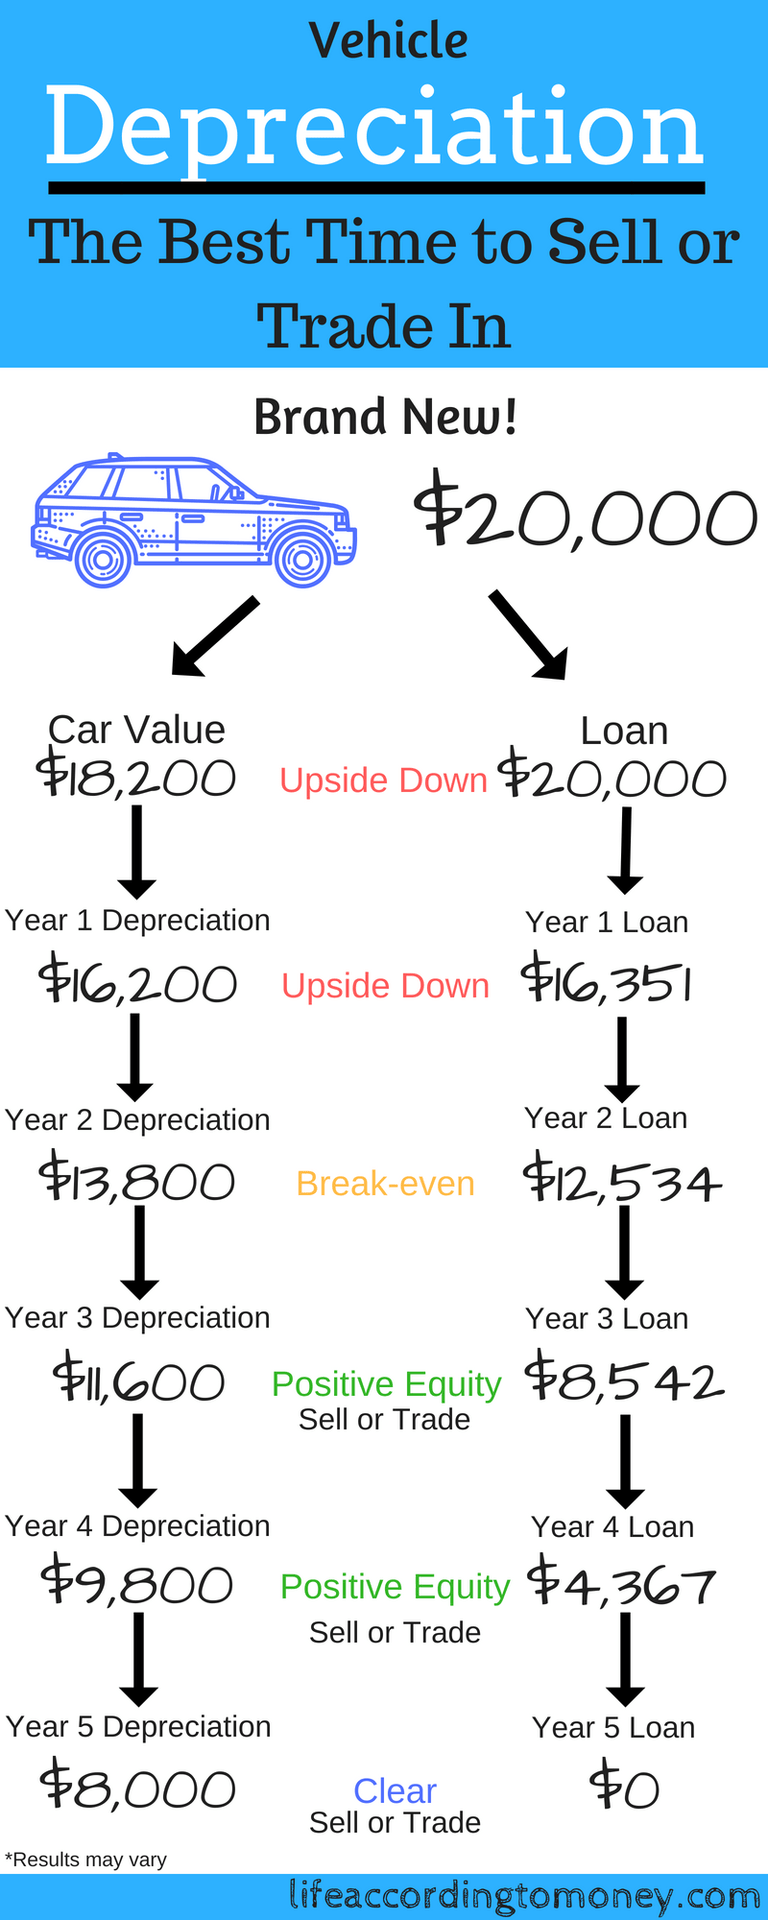 Buying Vs Leasing A Car Life According To Money Lease Vs Buy Car Lease Car Lease